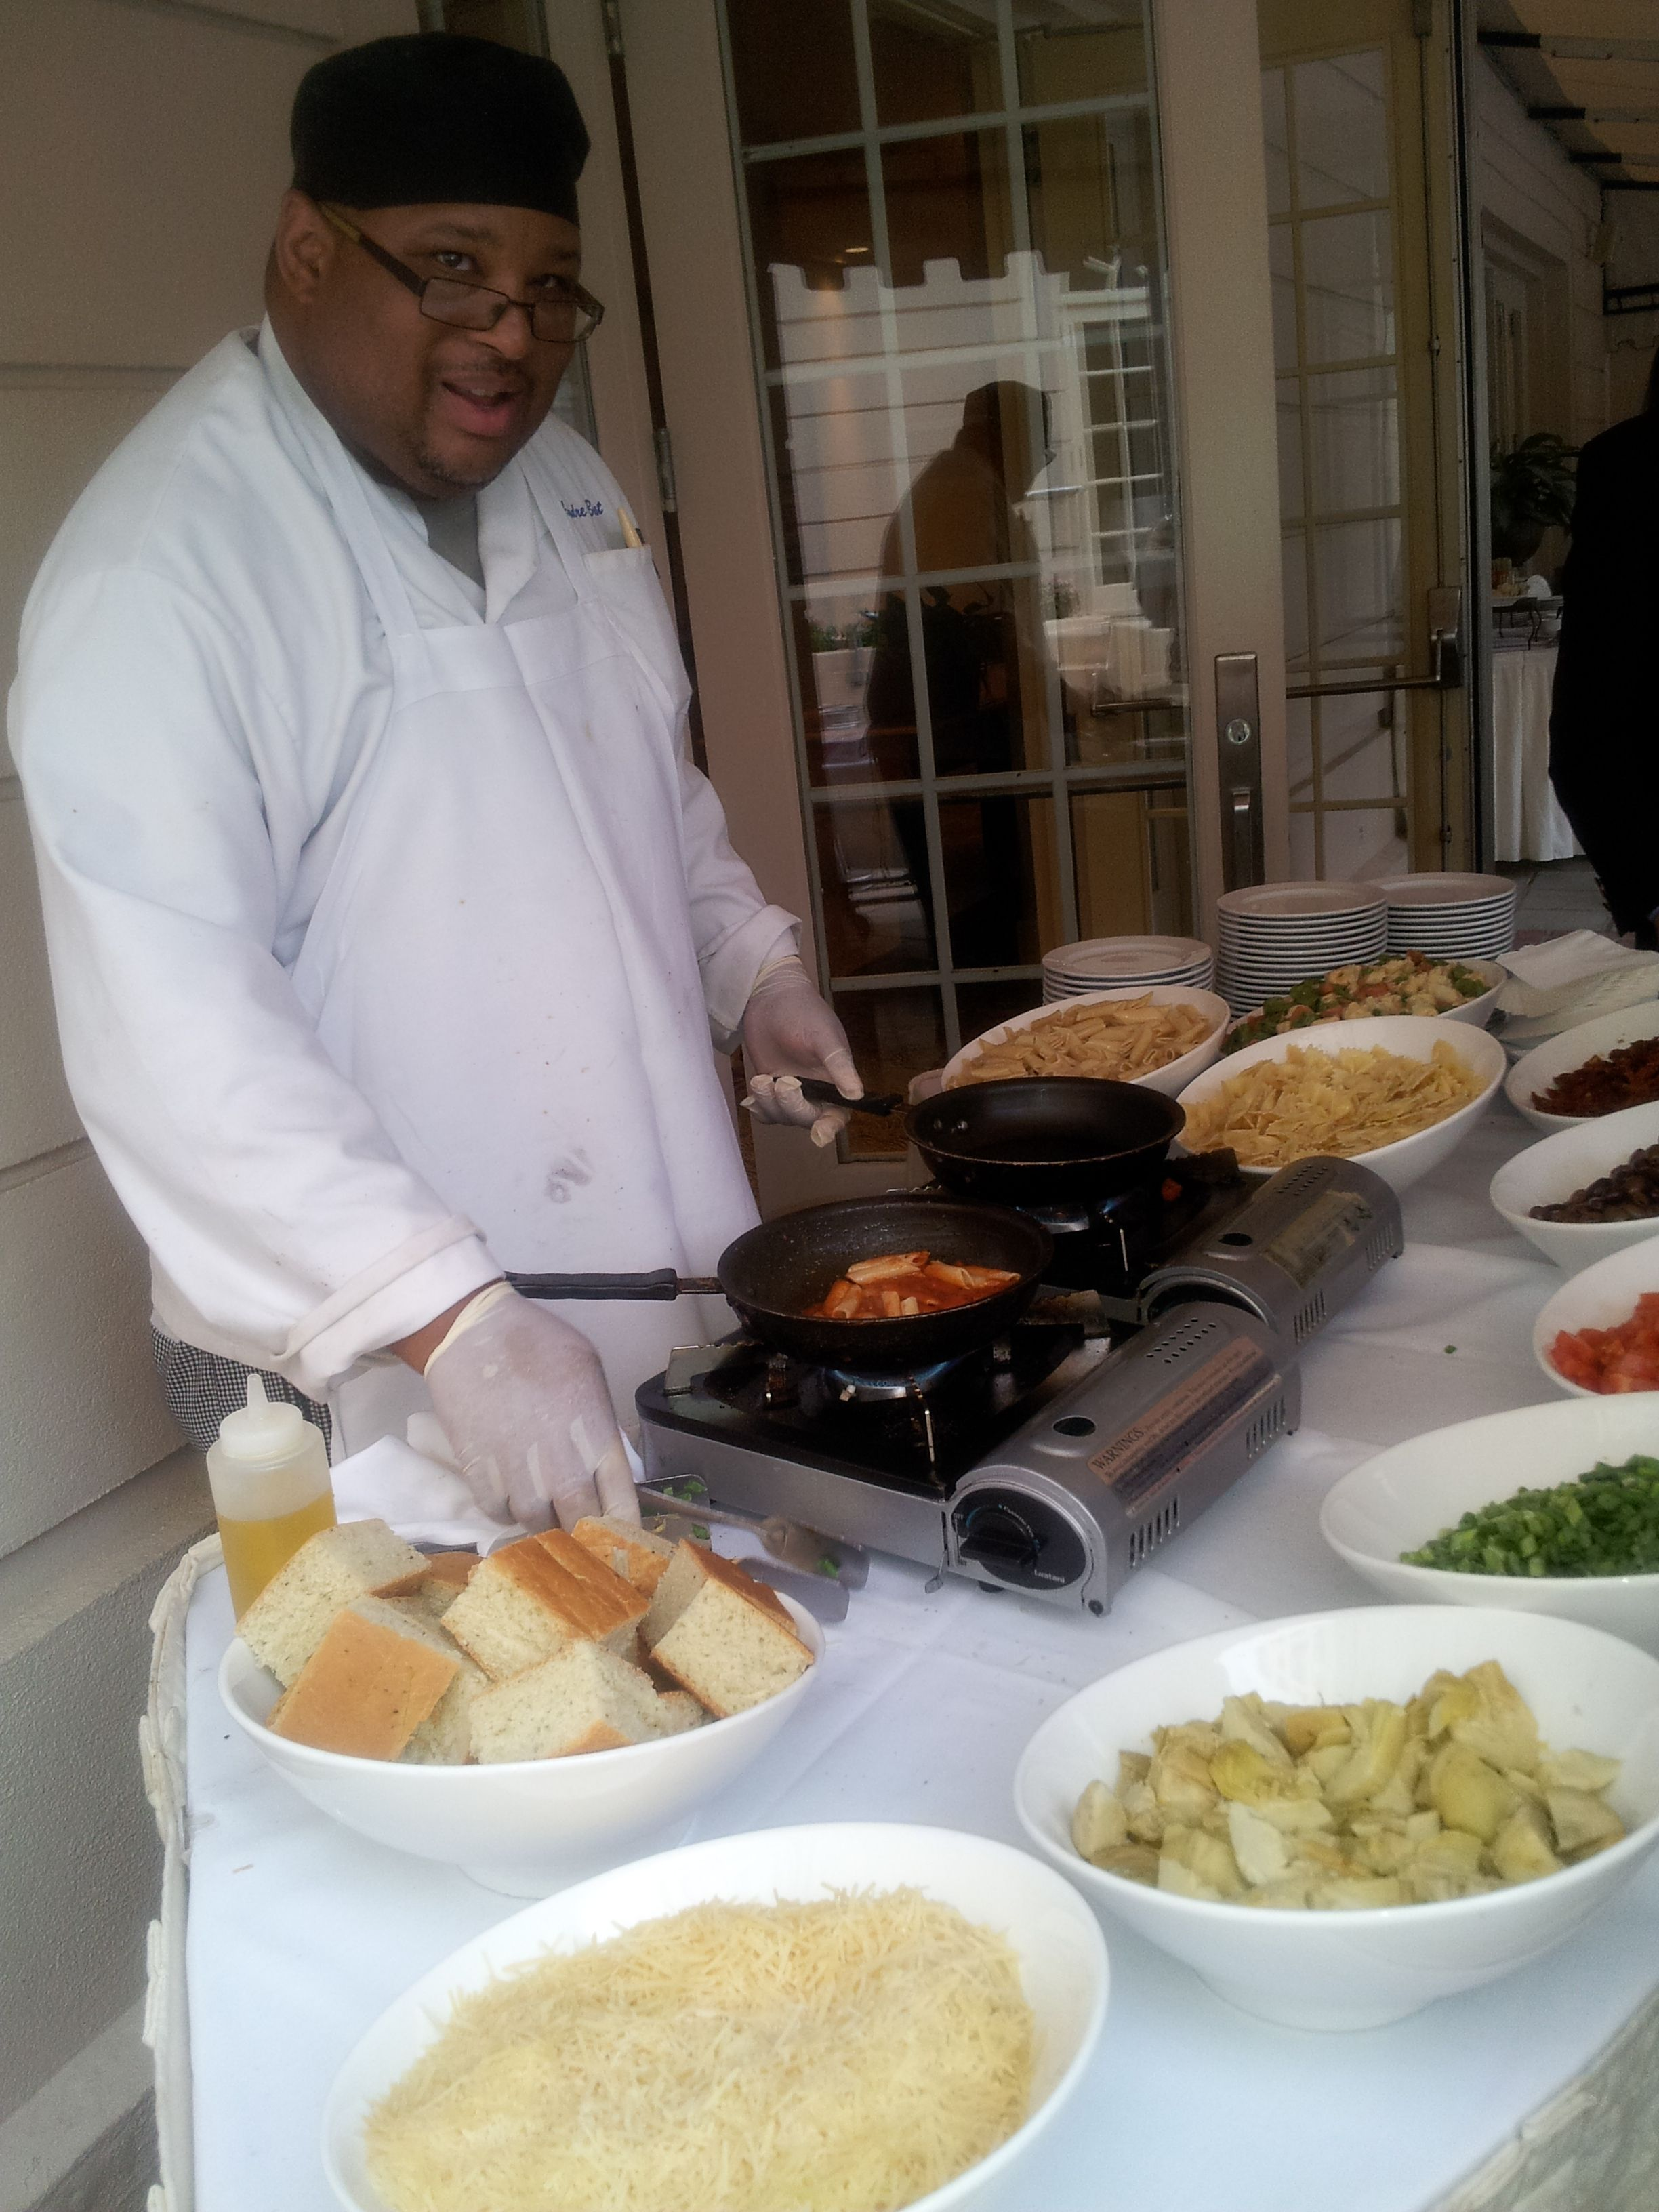 Chef Garden: Action Pasta Station With Chef Attendant